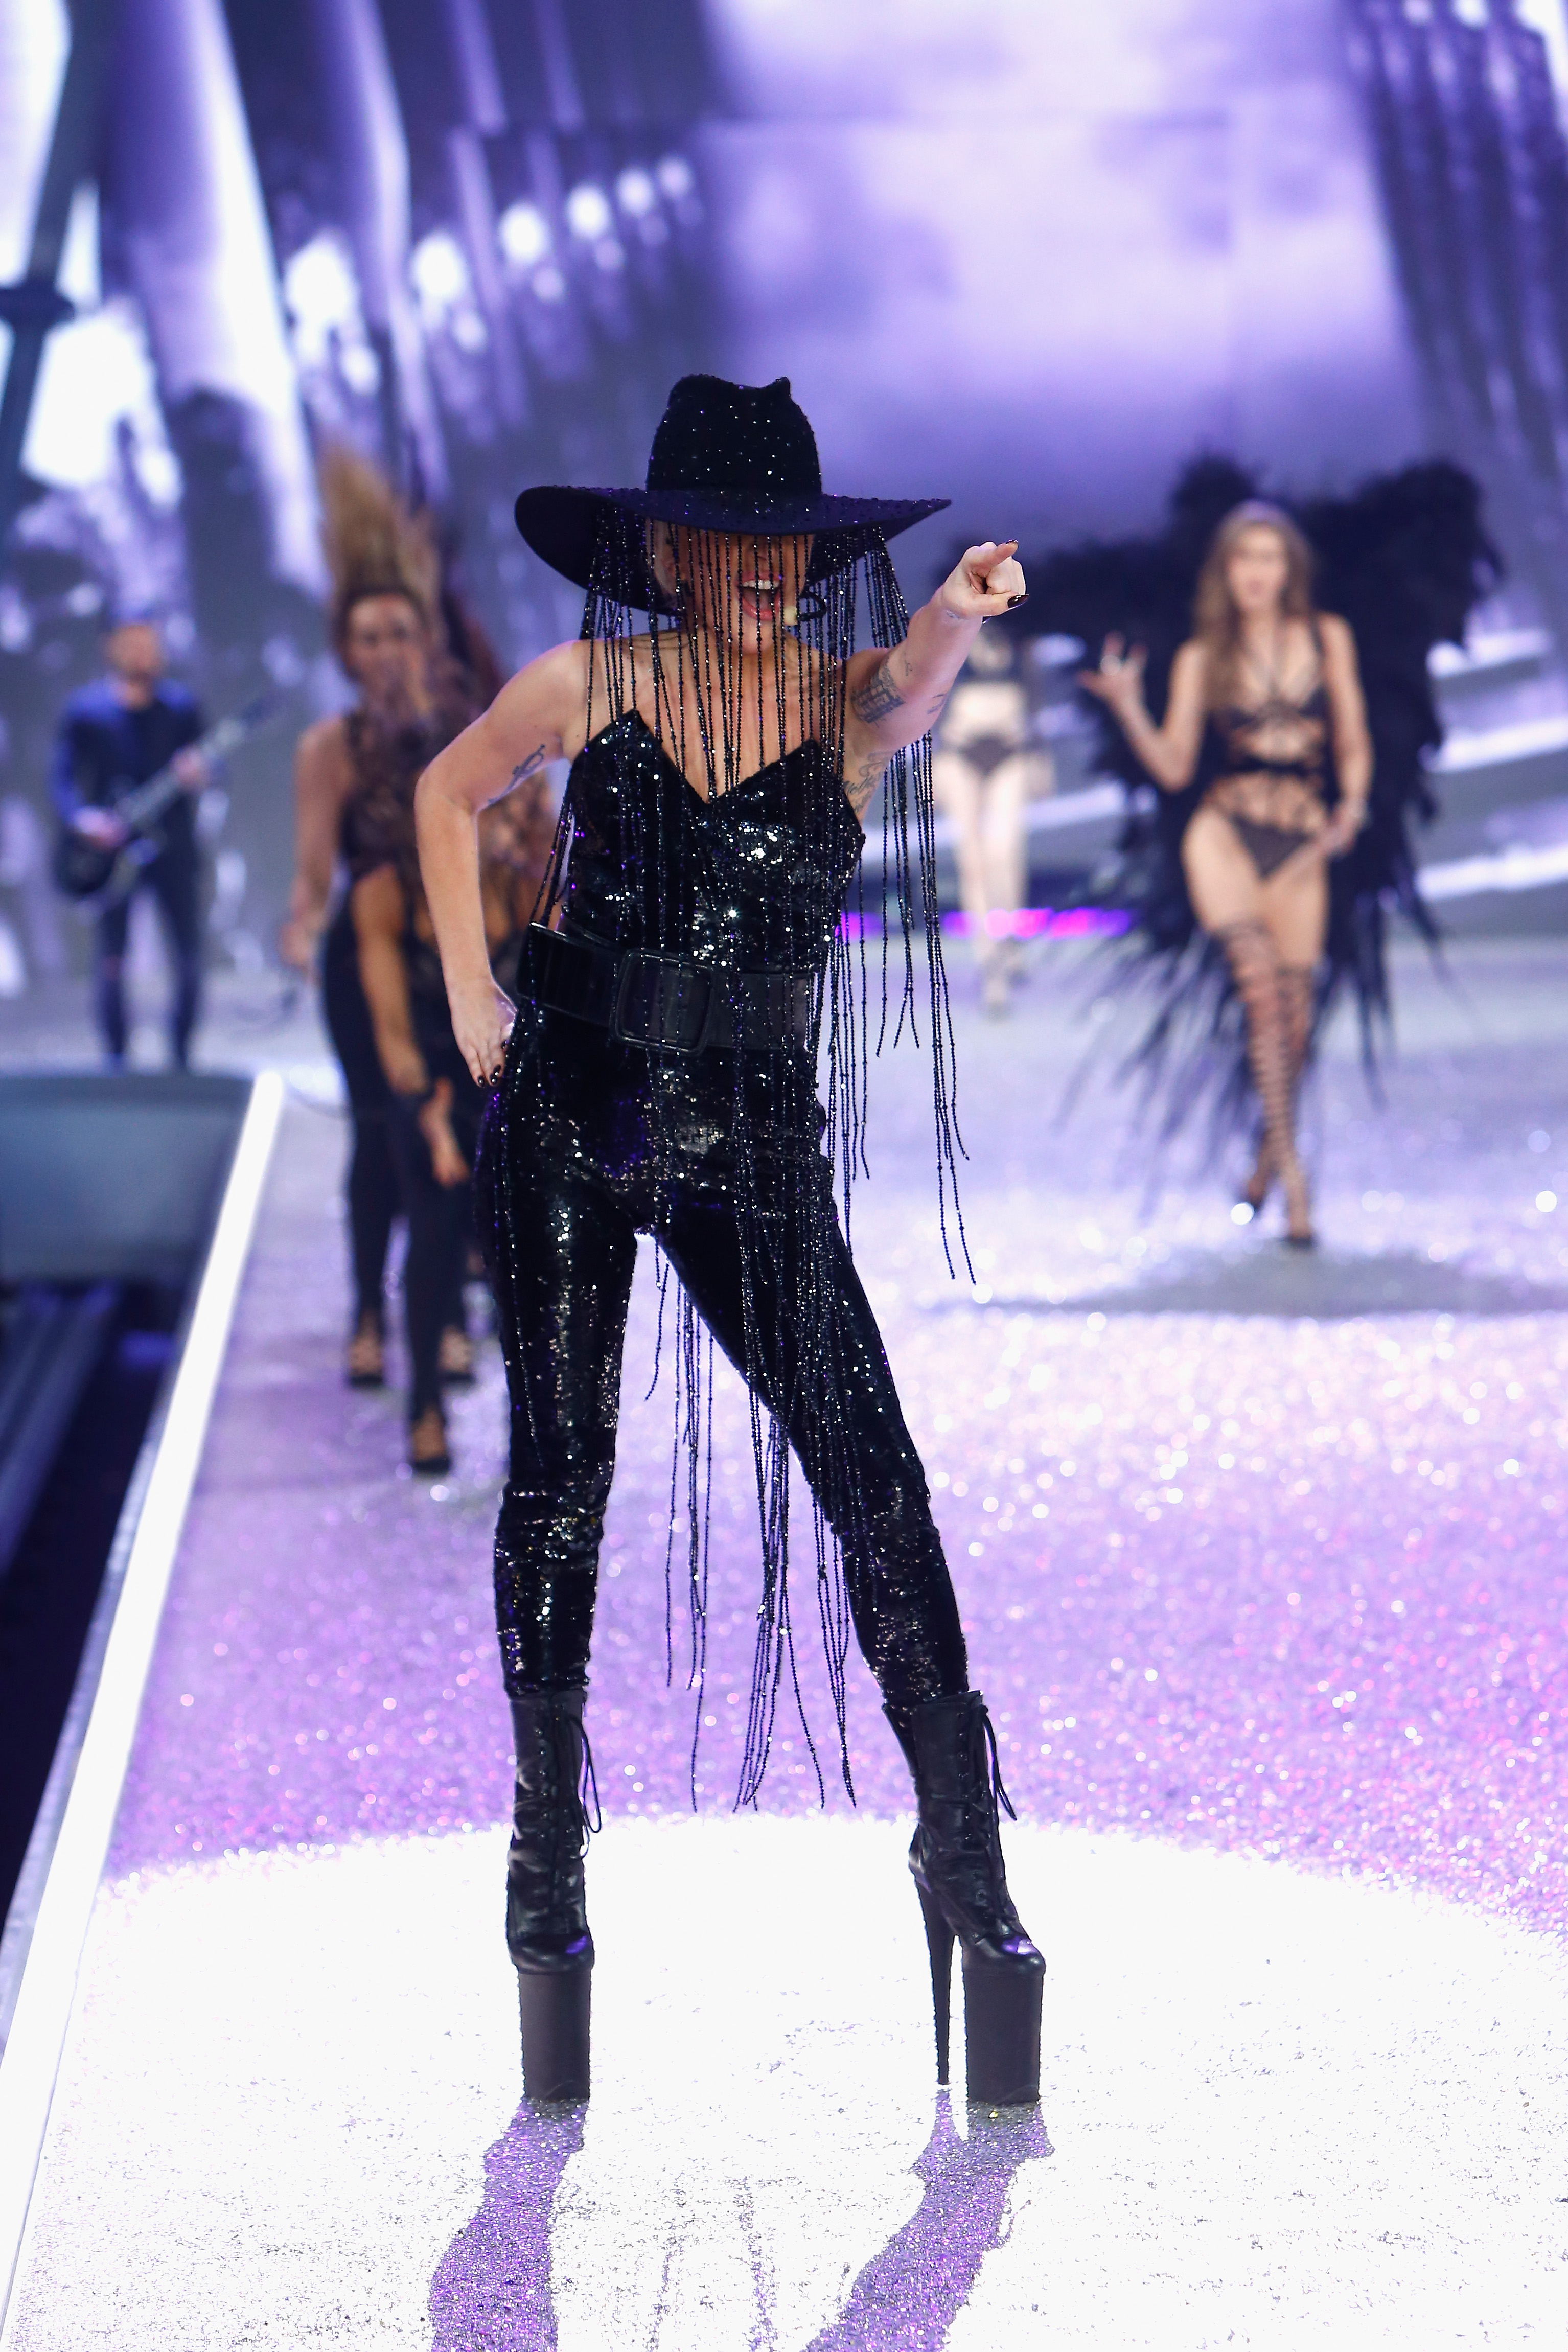 PARIS, FRANCE - NOVEMBER 30:  Lady Gaga performs on the runway with Swarovski crystals during Victoria's Secret Fashion Show on November 30, 2016 in Paris, France.  (Photo by Julien M. Hekimian/Getty Images for Swarovski)